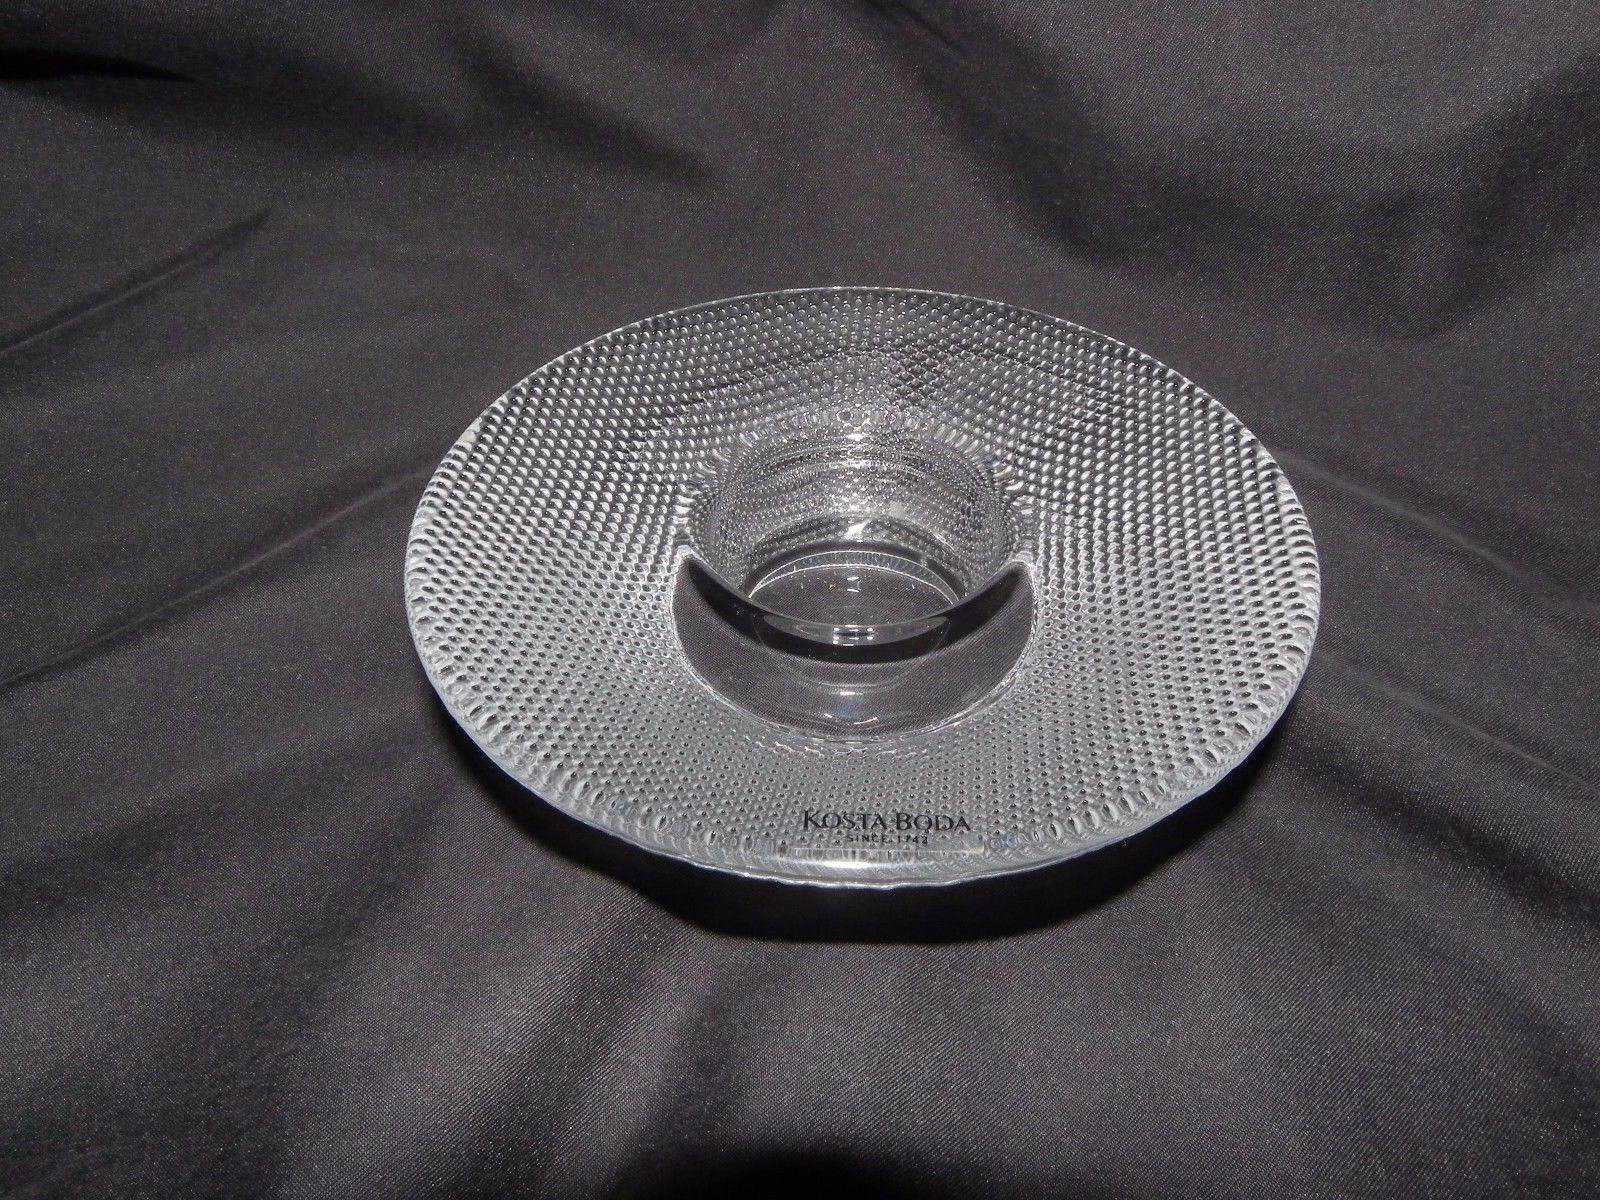 Primary image for Kosta Boda Limelight Votive Candle Holder Pristine